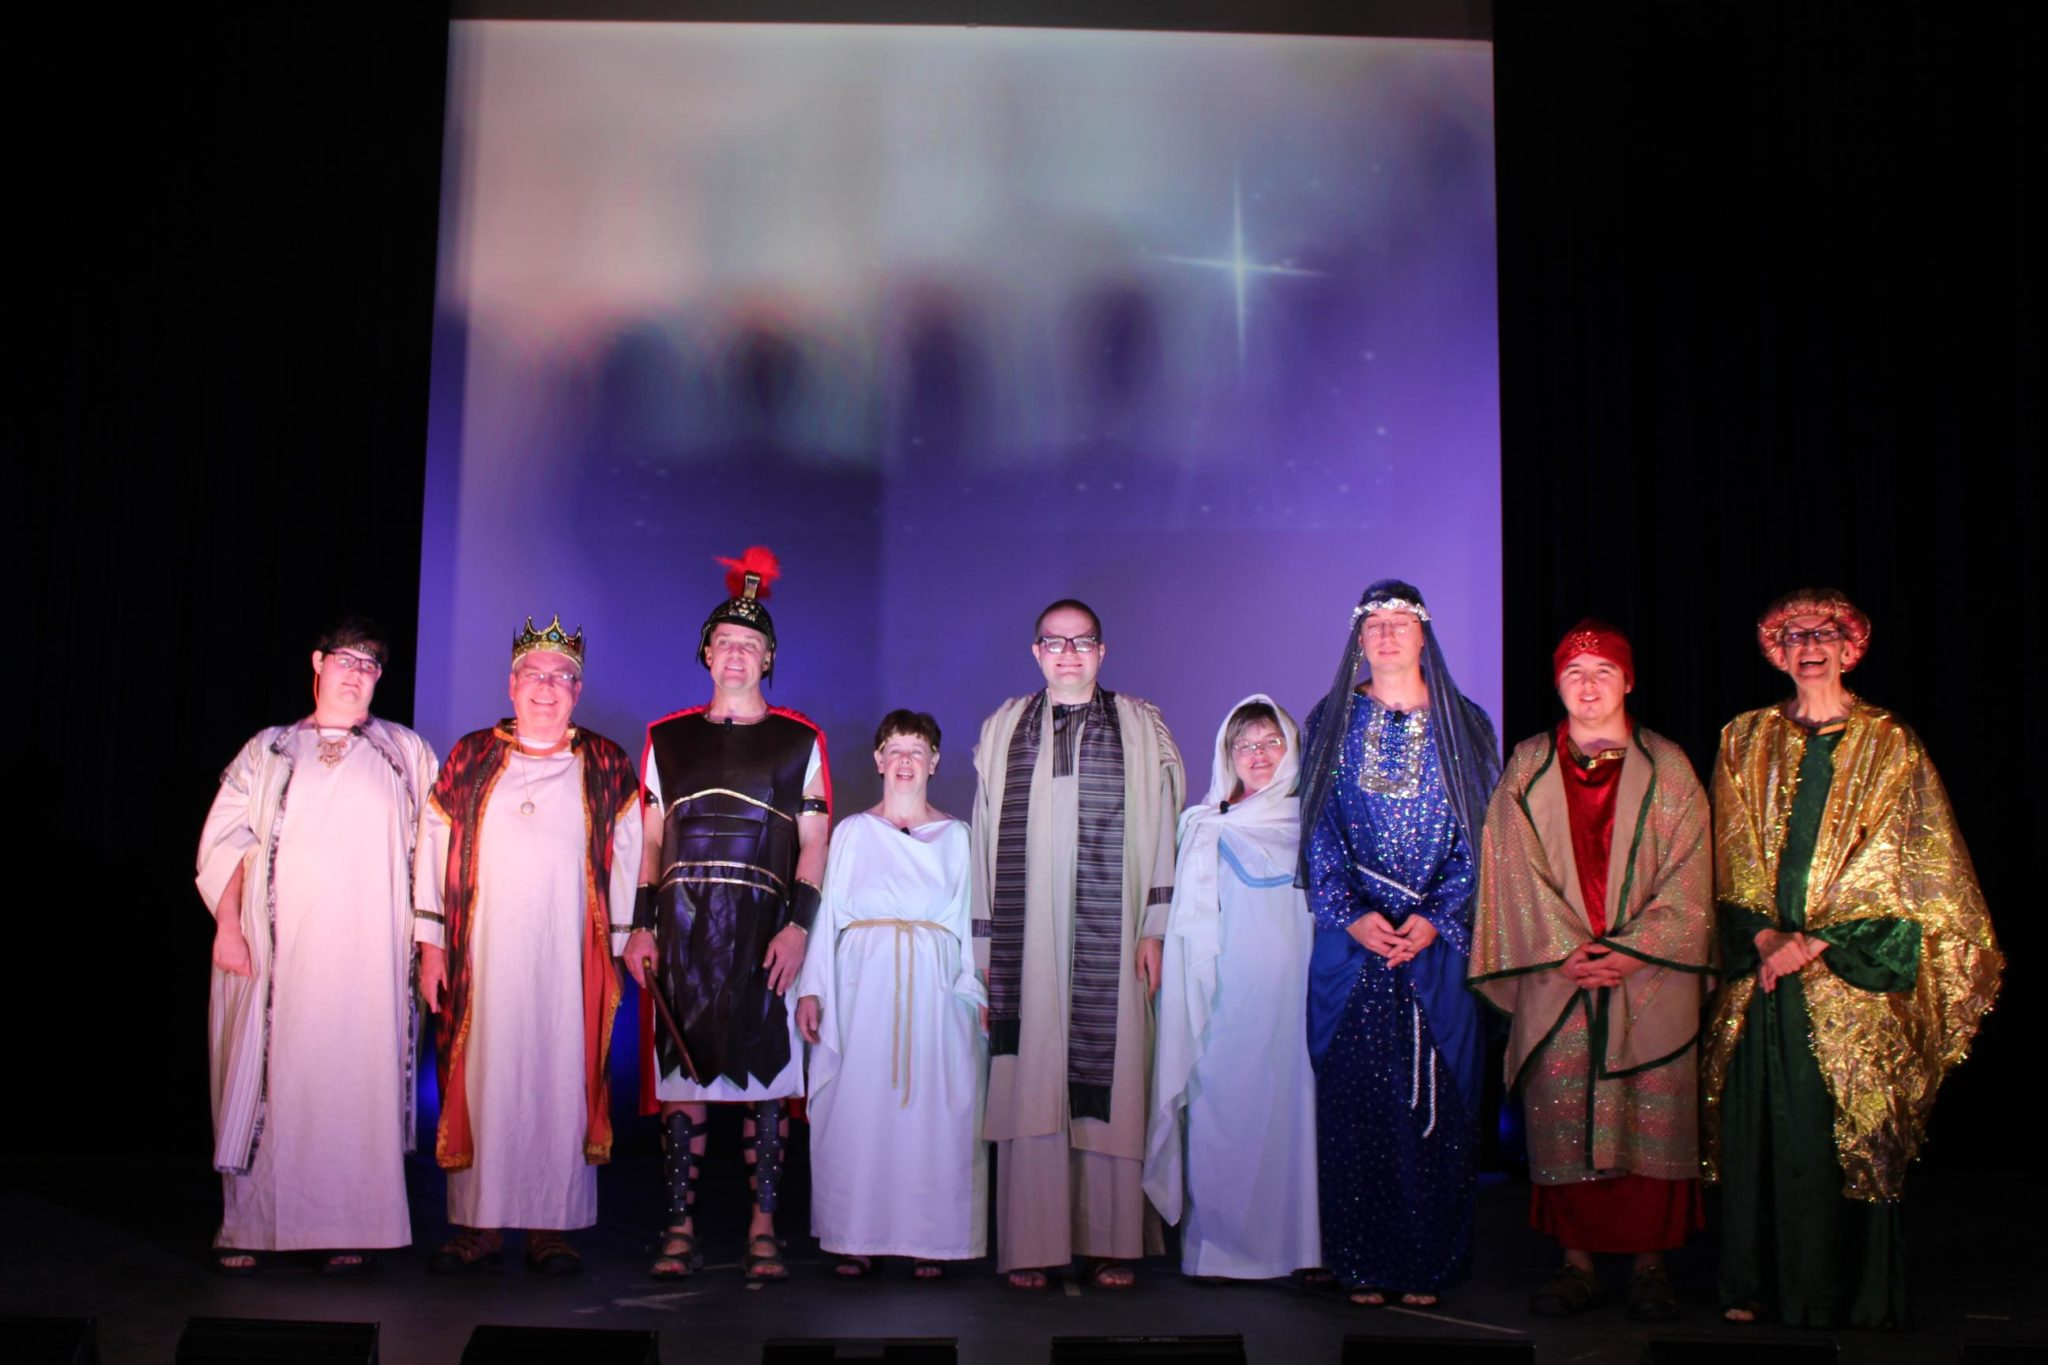 The entire cast, include the wise men